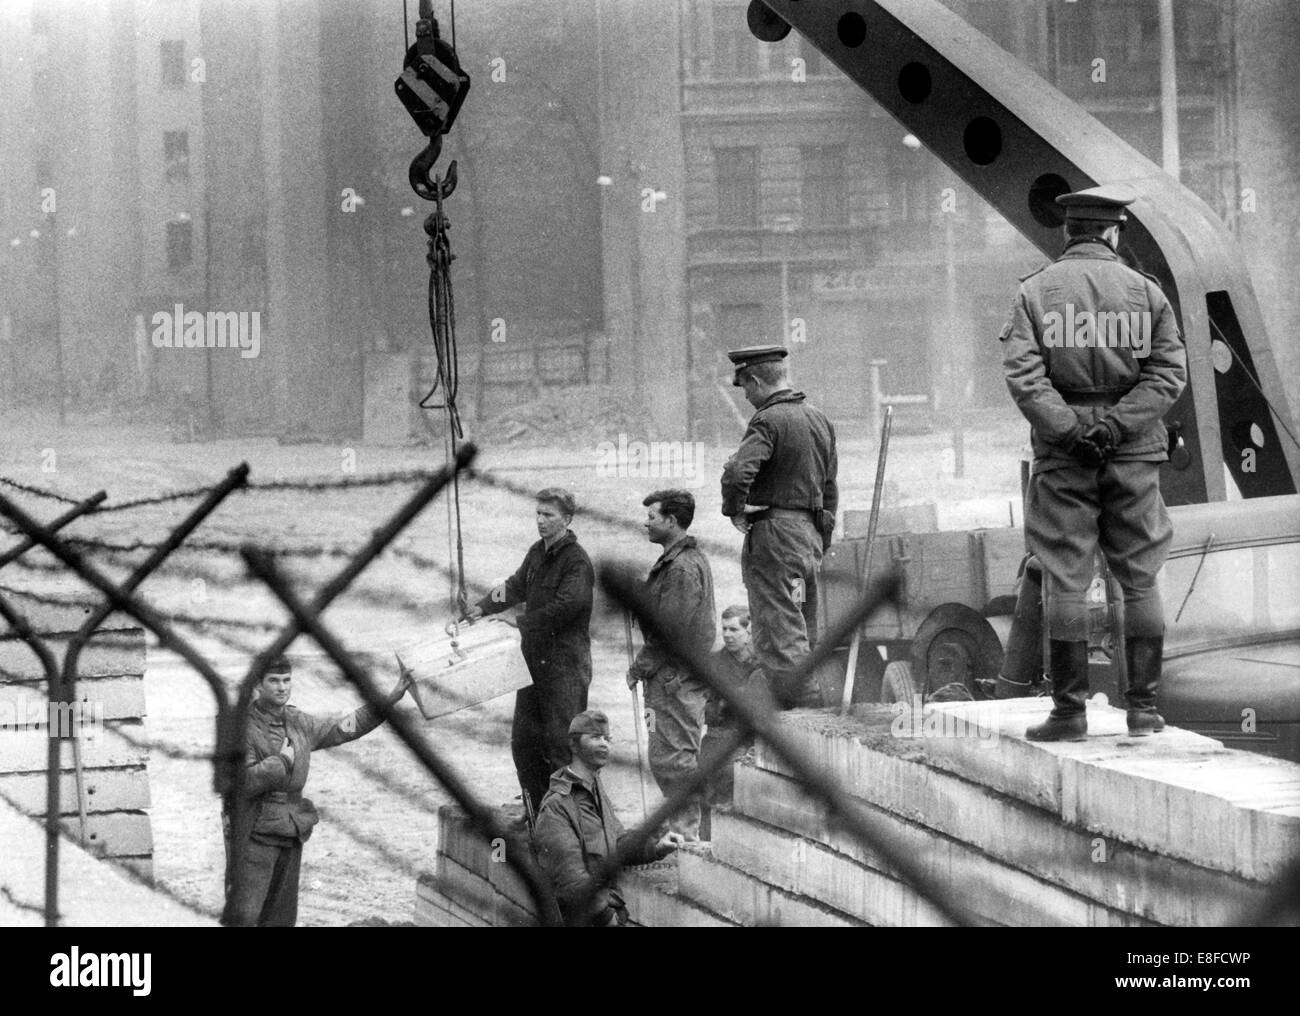 Working squads from East Berlin build a second, new wall behind the already existing one, in Bernauer Street in - Stock Image